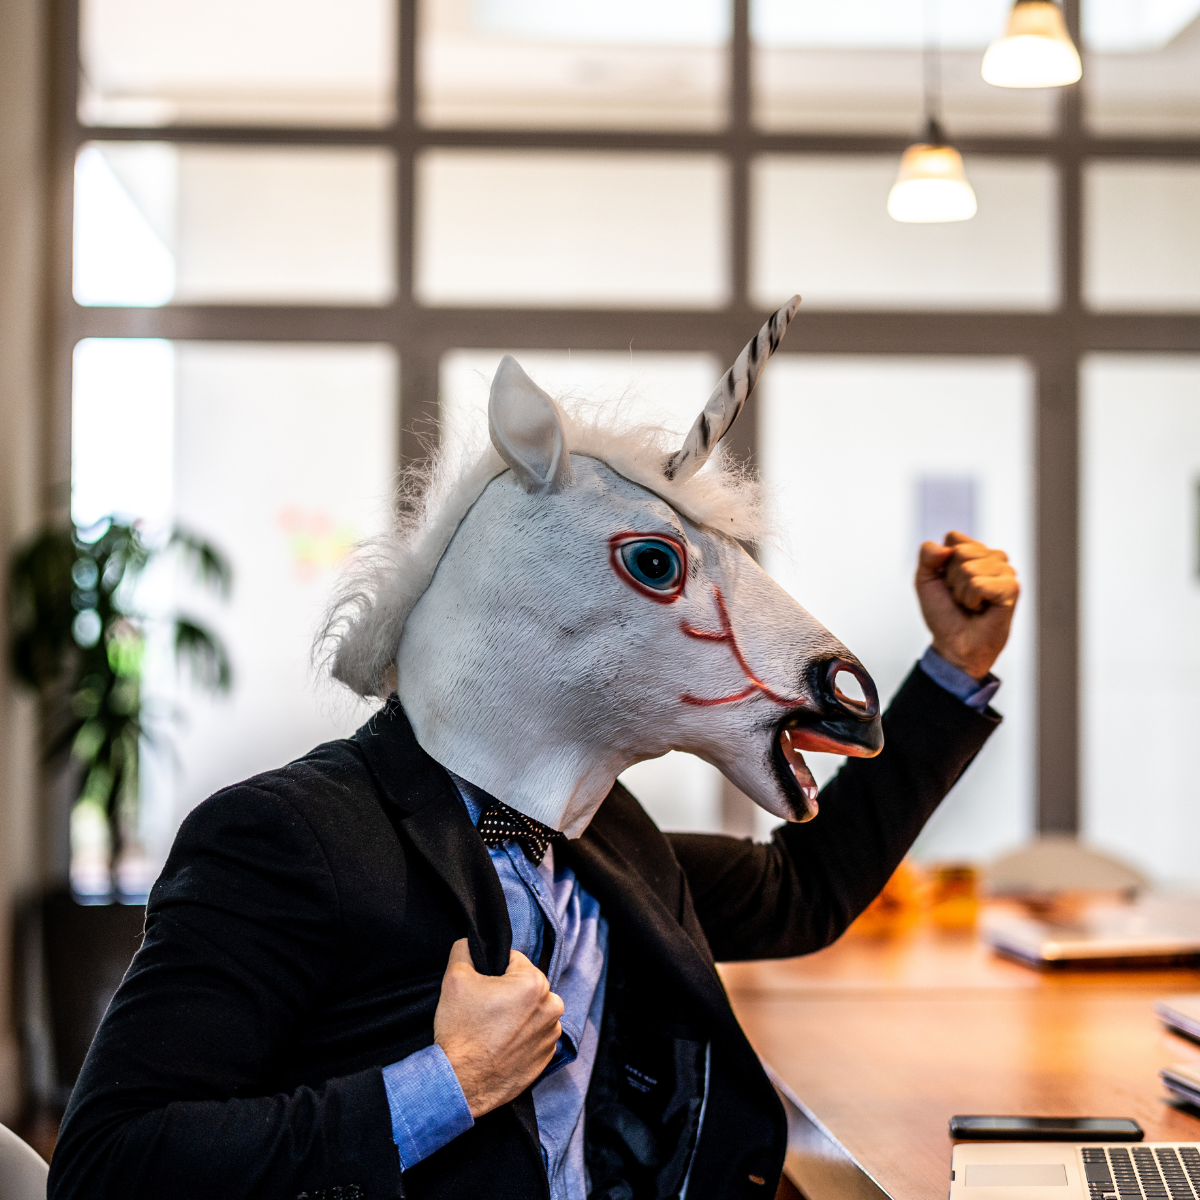 How to find the elusive IT unicorn